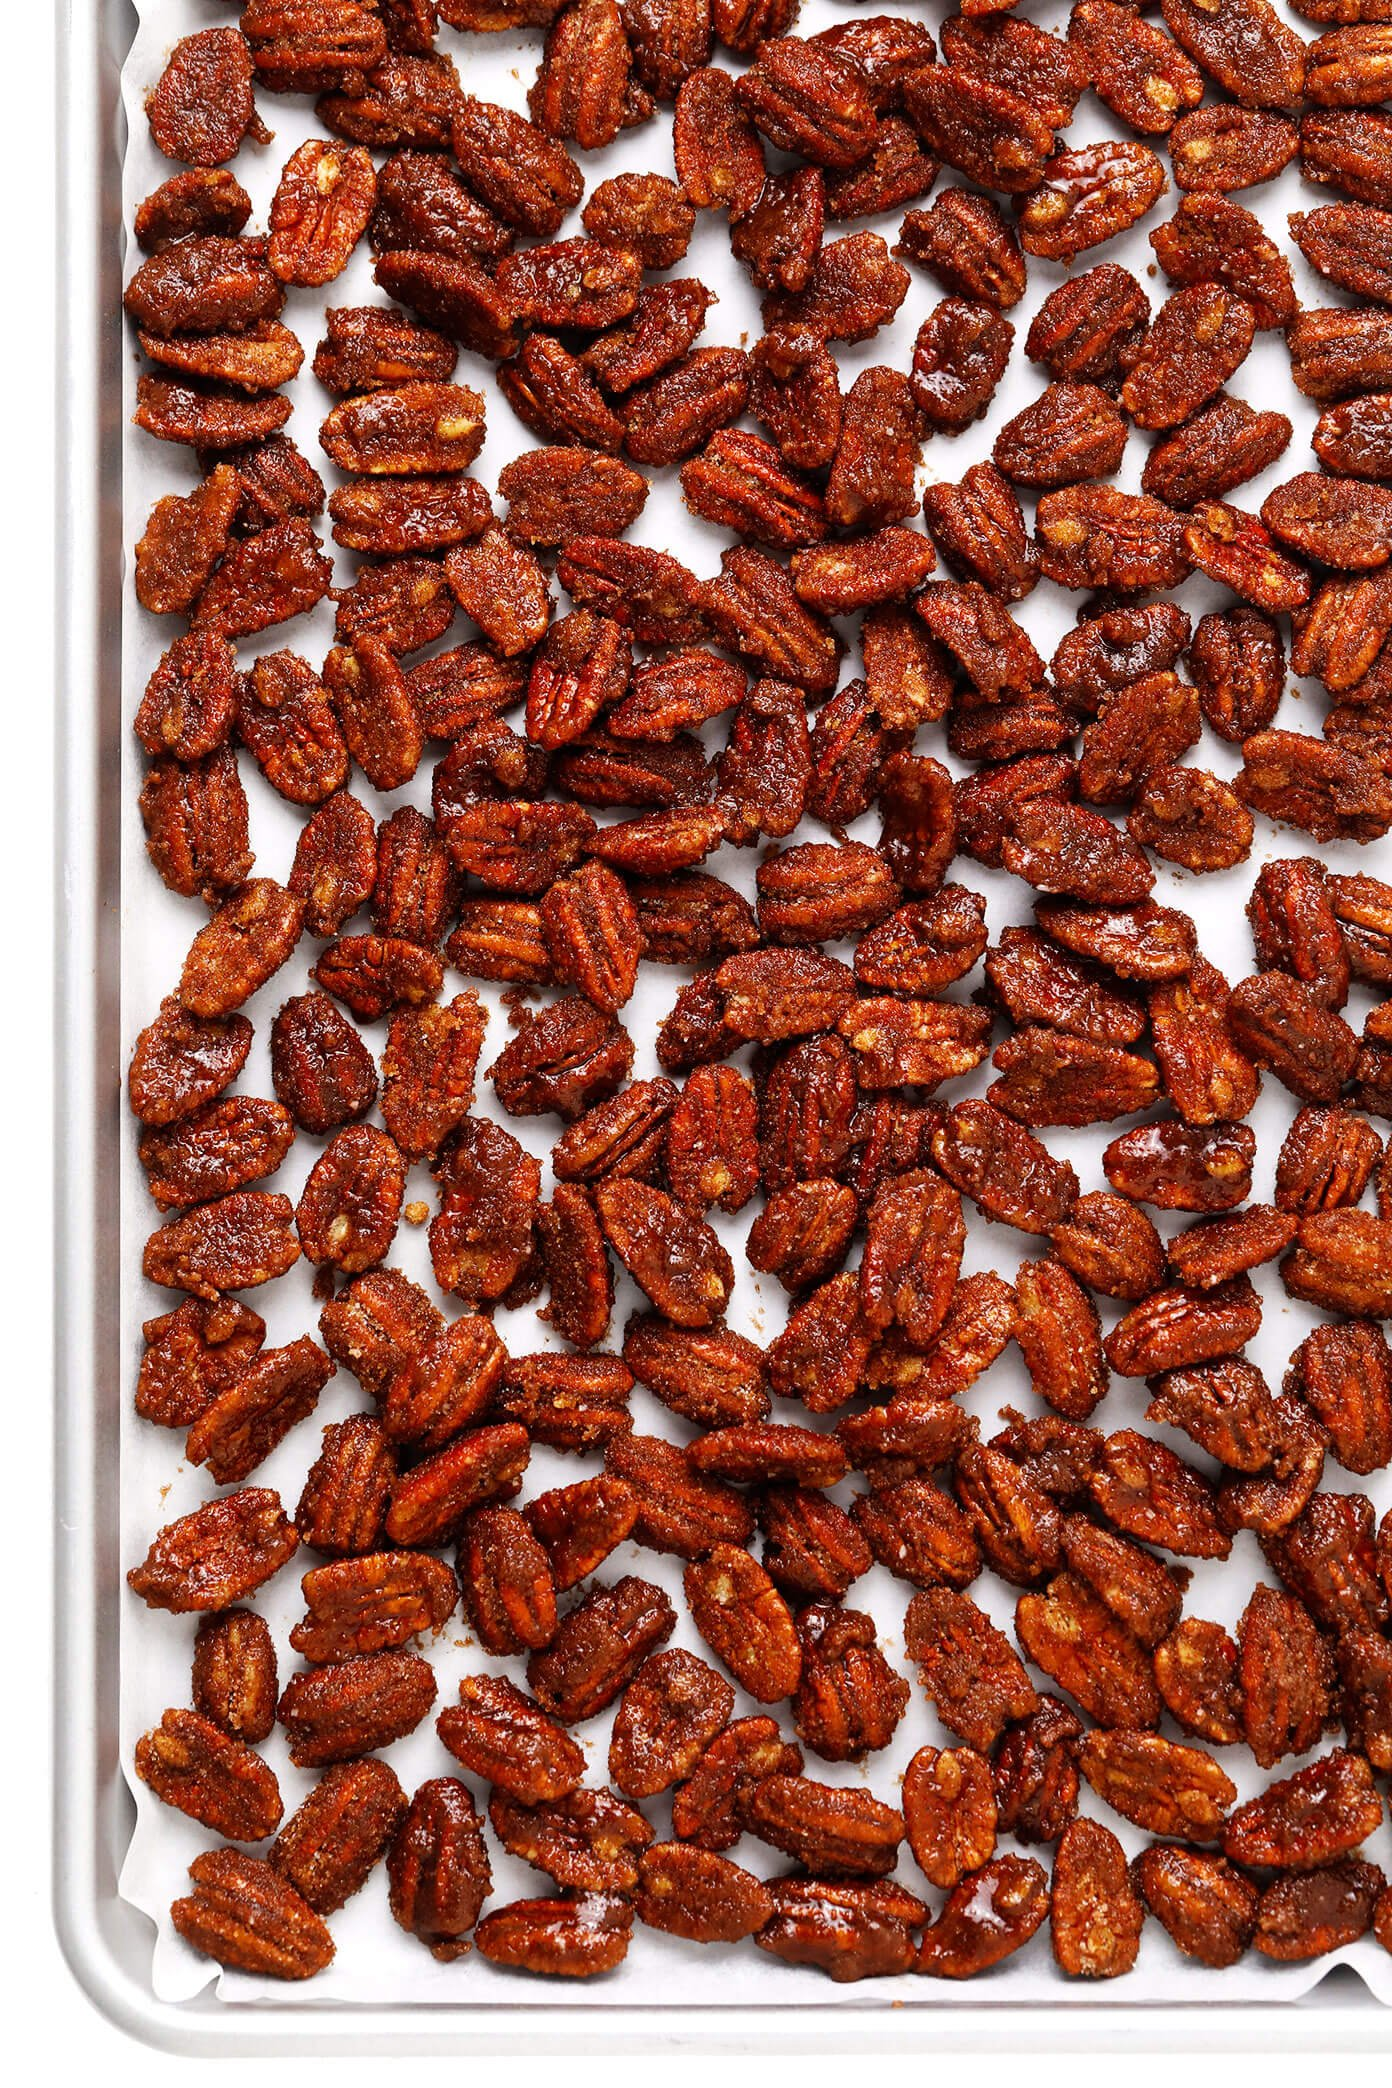 Prepping candied pecans for baking